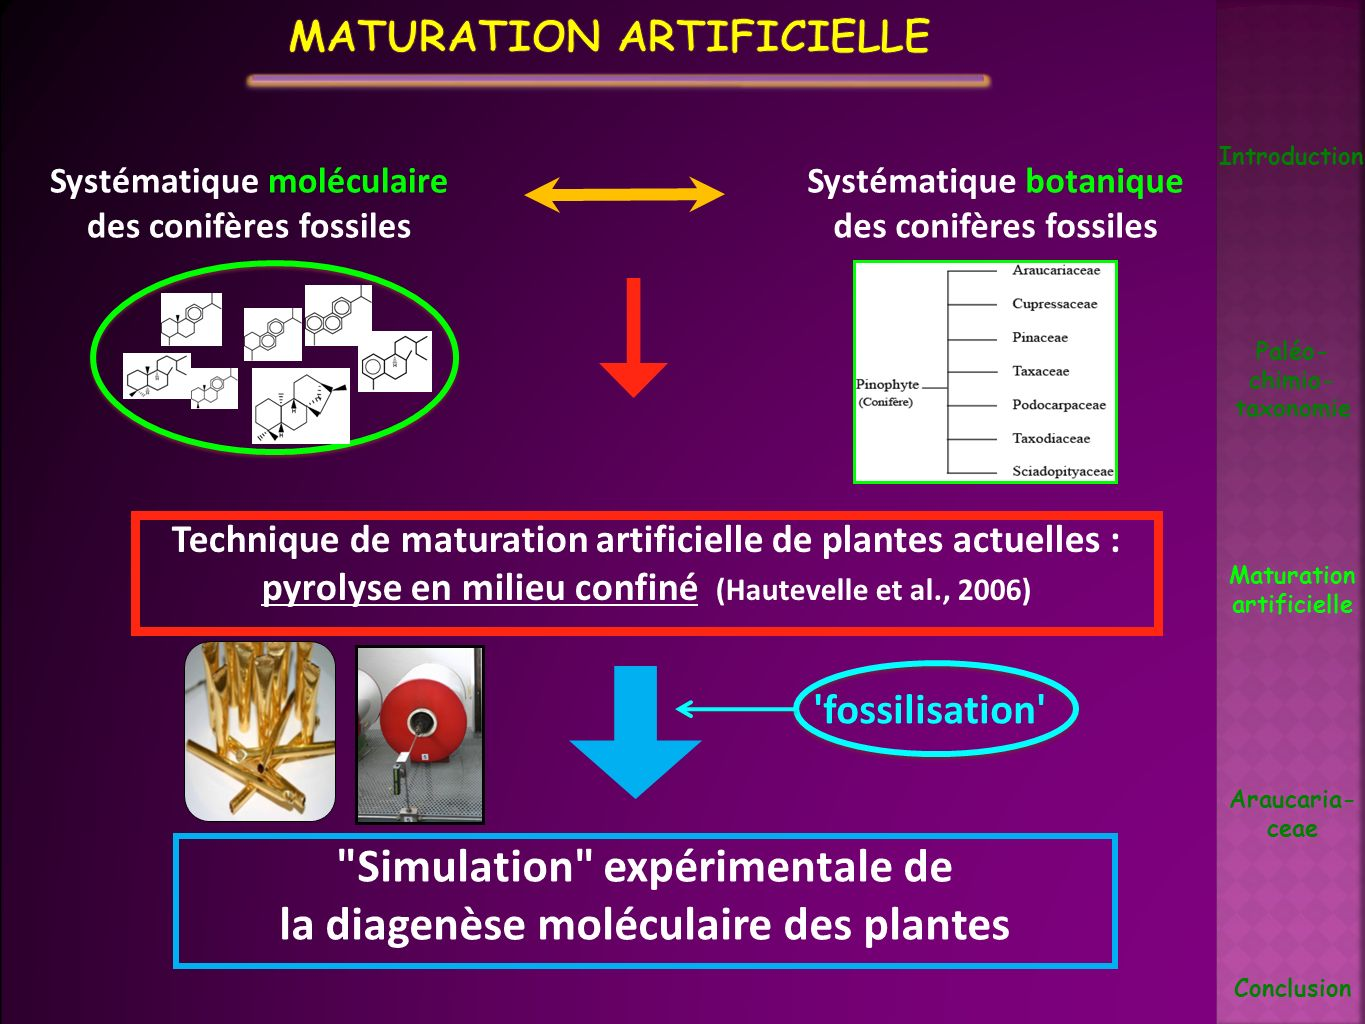 Plante fraiche Tubes d or soudés Pyrolyse en milieu confiné Mise en solution des terpénoïdes (CH 2 Cl 2 ) Aliphatique Aromatique Polaire Fractionnement Analyse moléculaire (GC-MS) Introduction Paléo- chimio- taxonomie Maturation artificielle Araucaria- ceae Conclusion